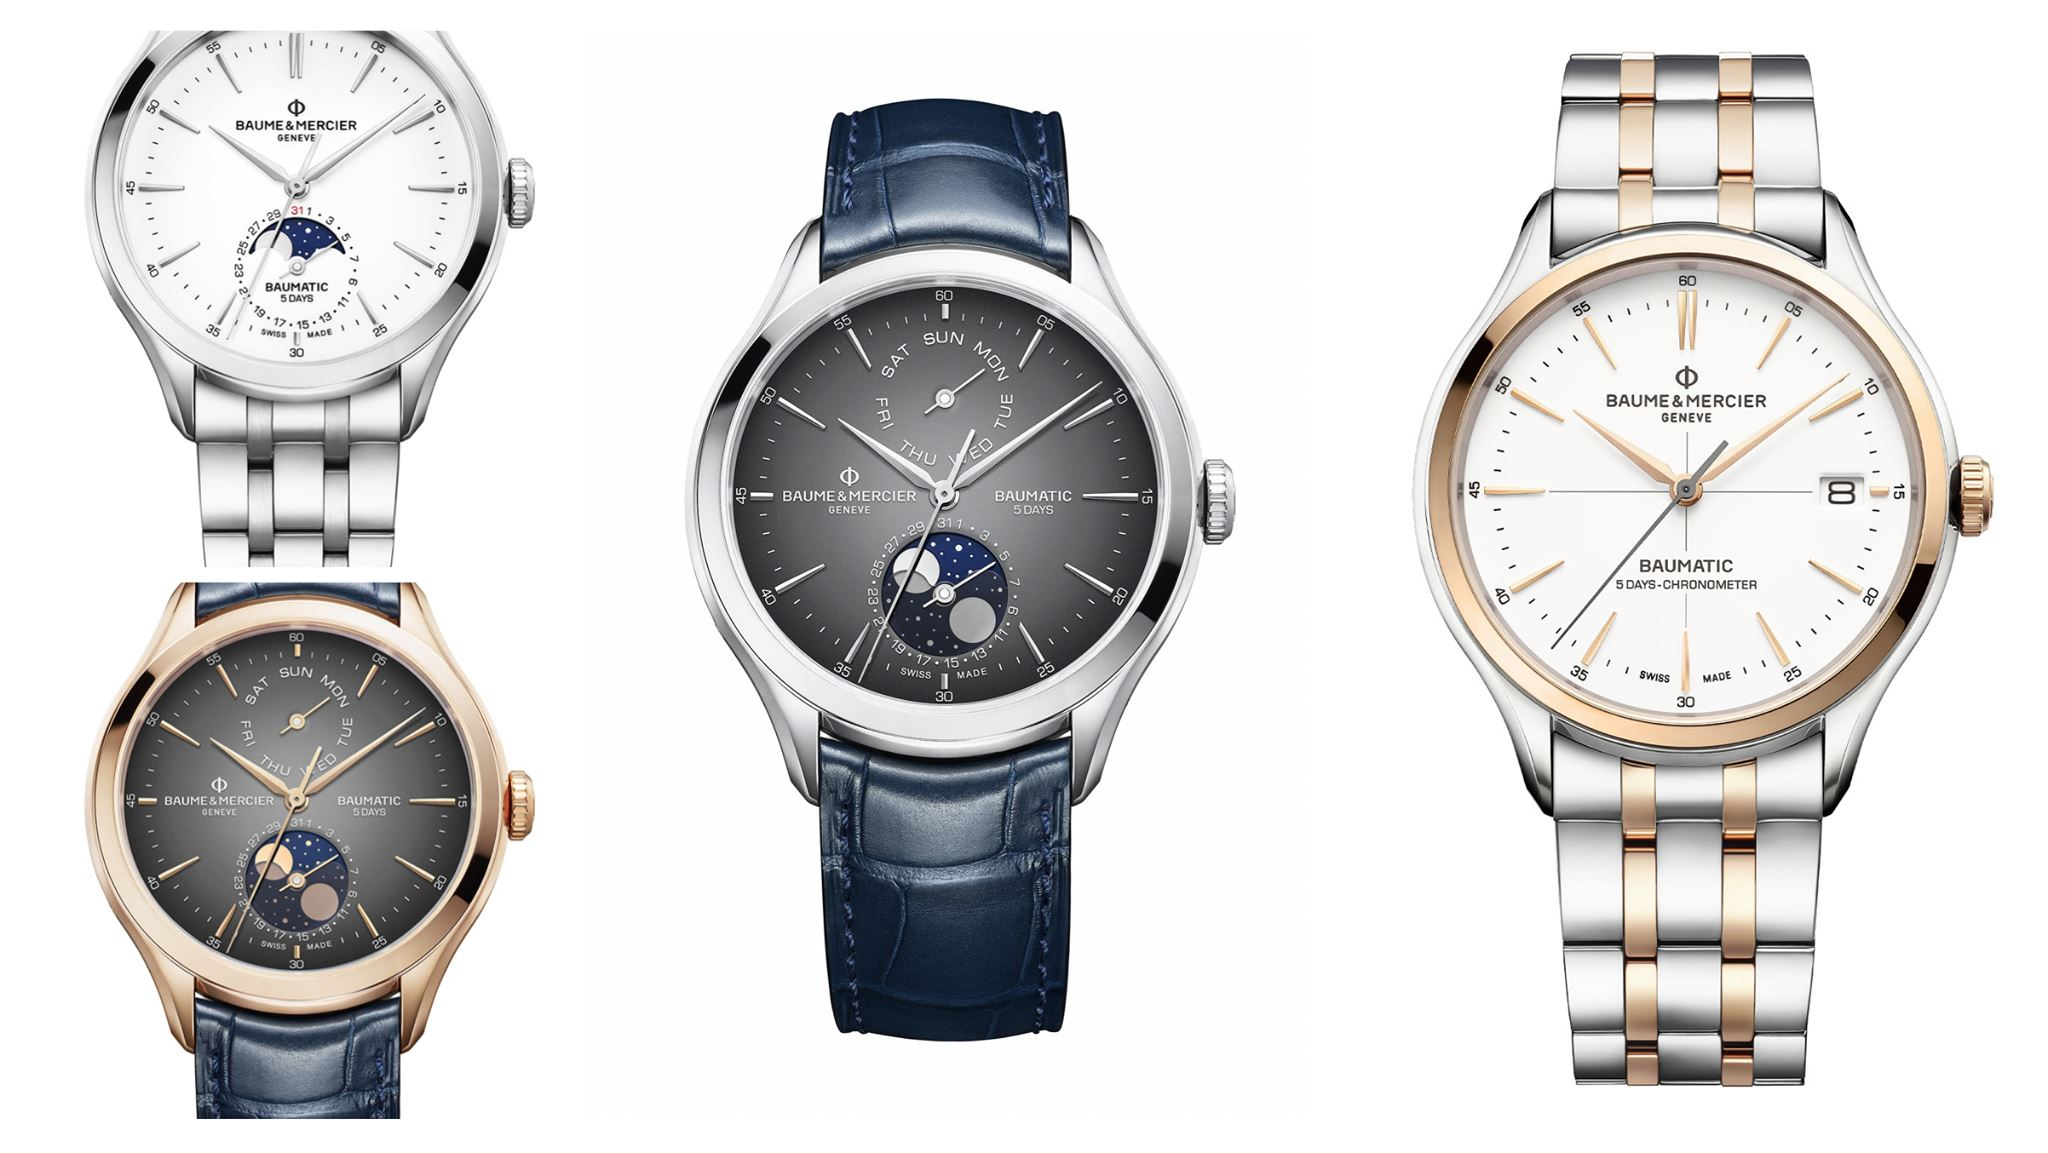 Baume et Mercier Clifton Baumatic Coleccion 2020 Watches Wonders-slider